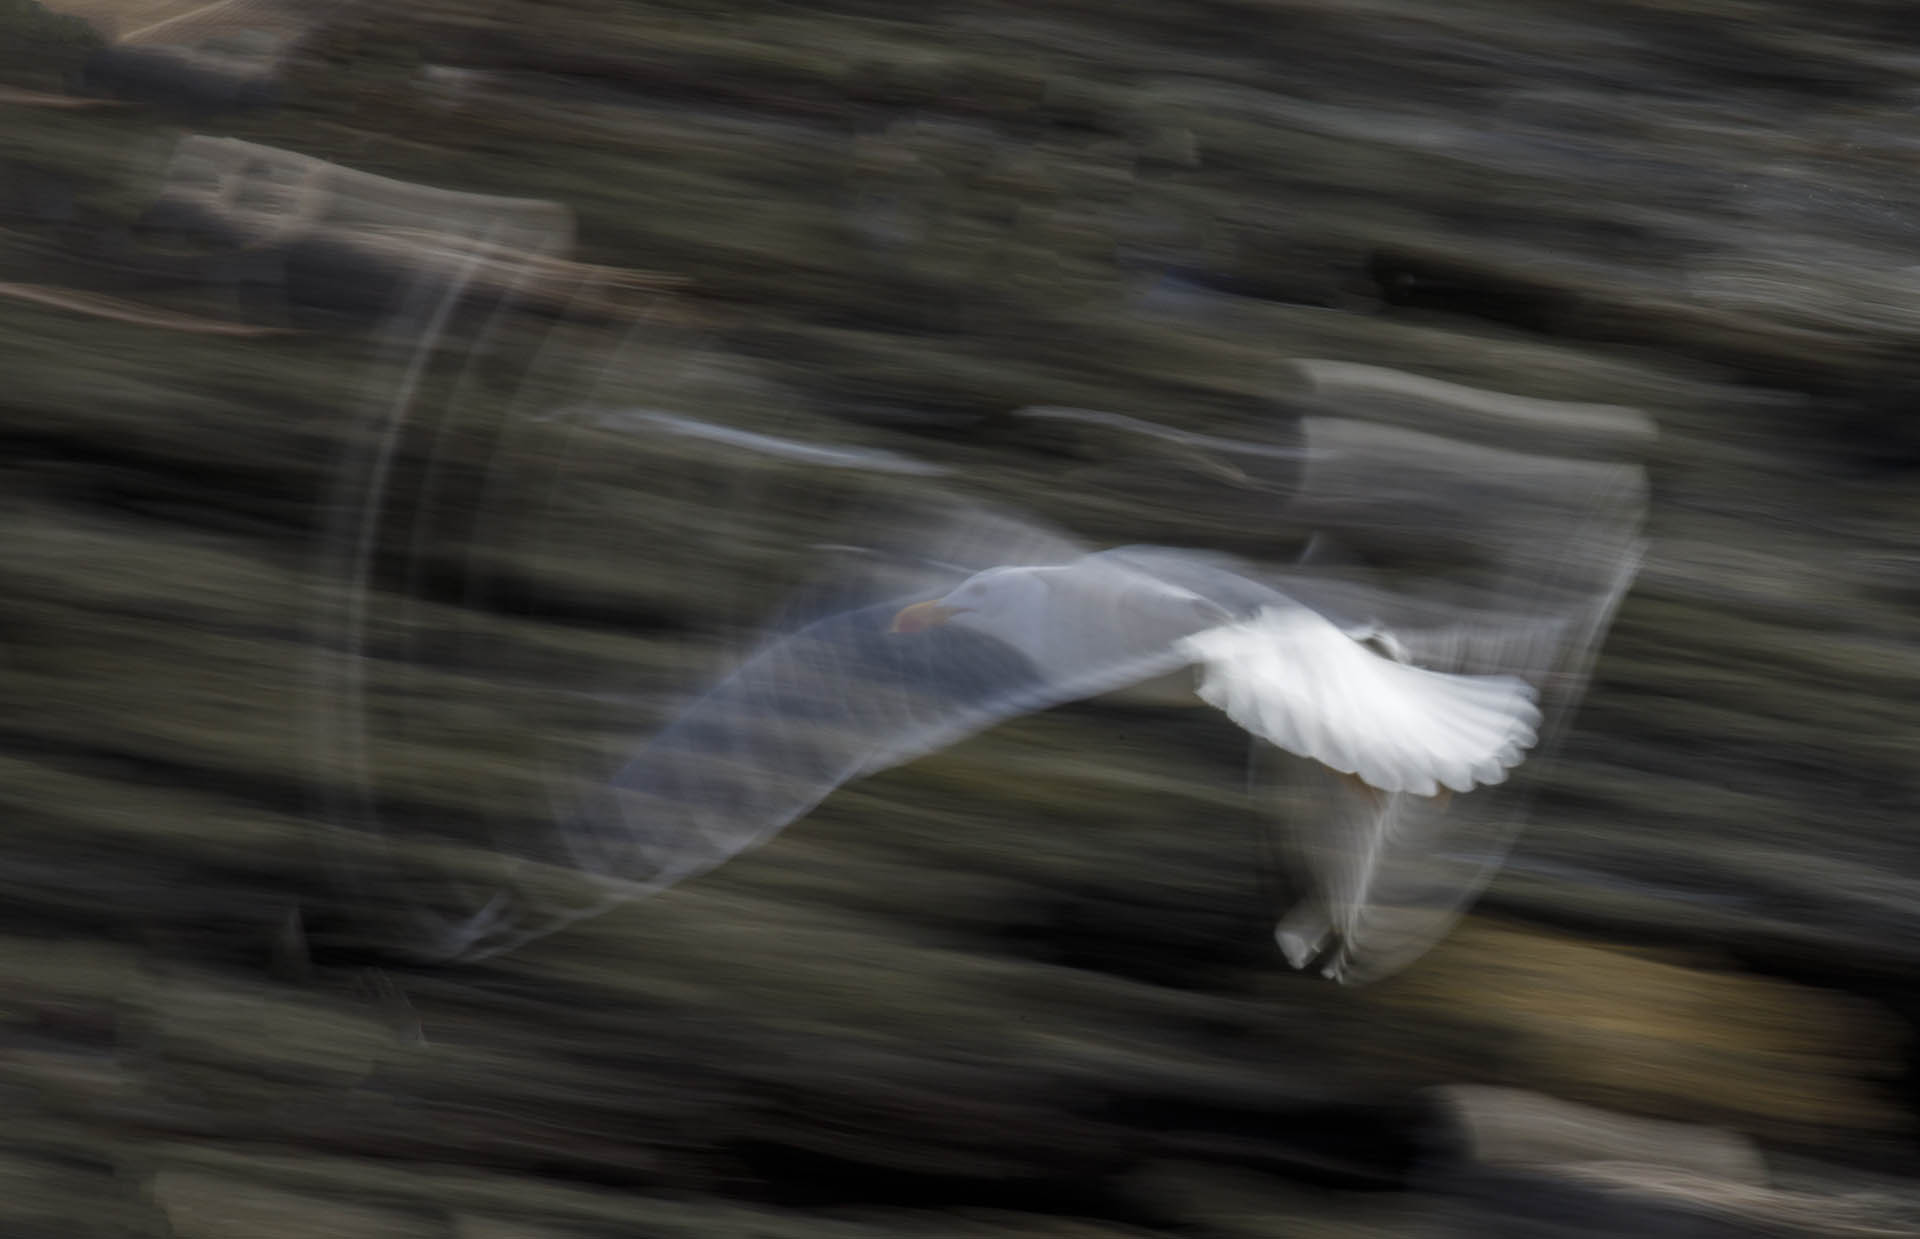 Flying gull with transparant wing